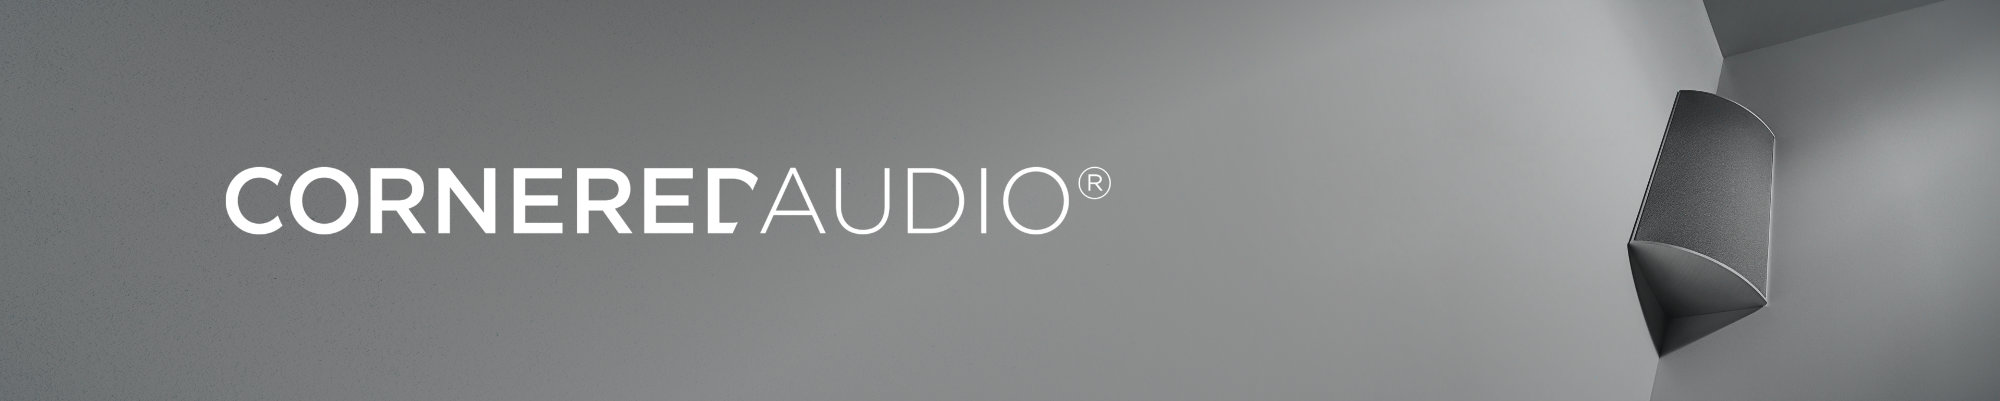 Cornered Audio banner